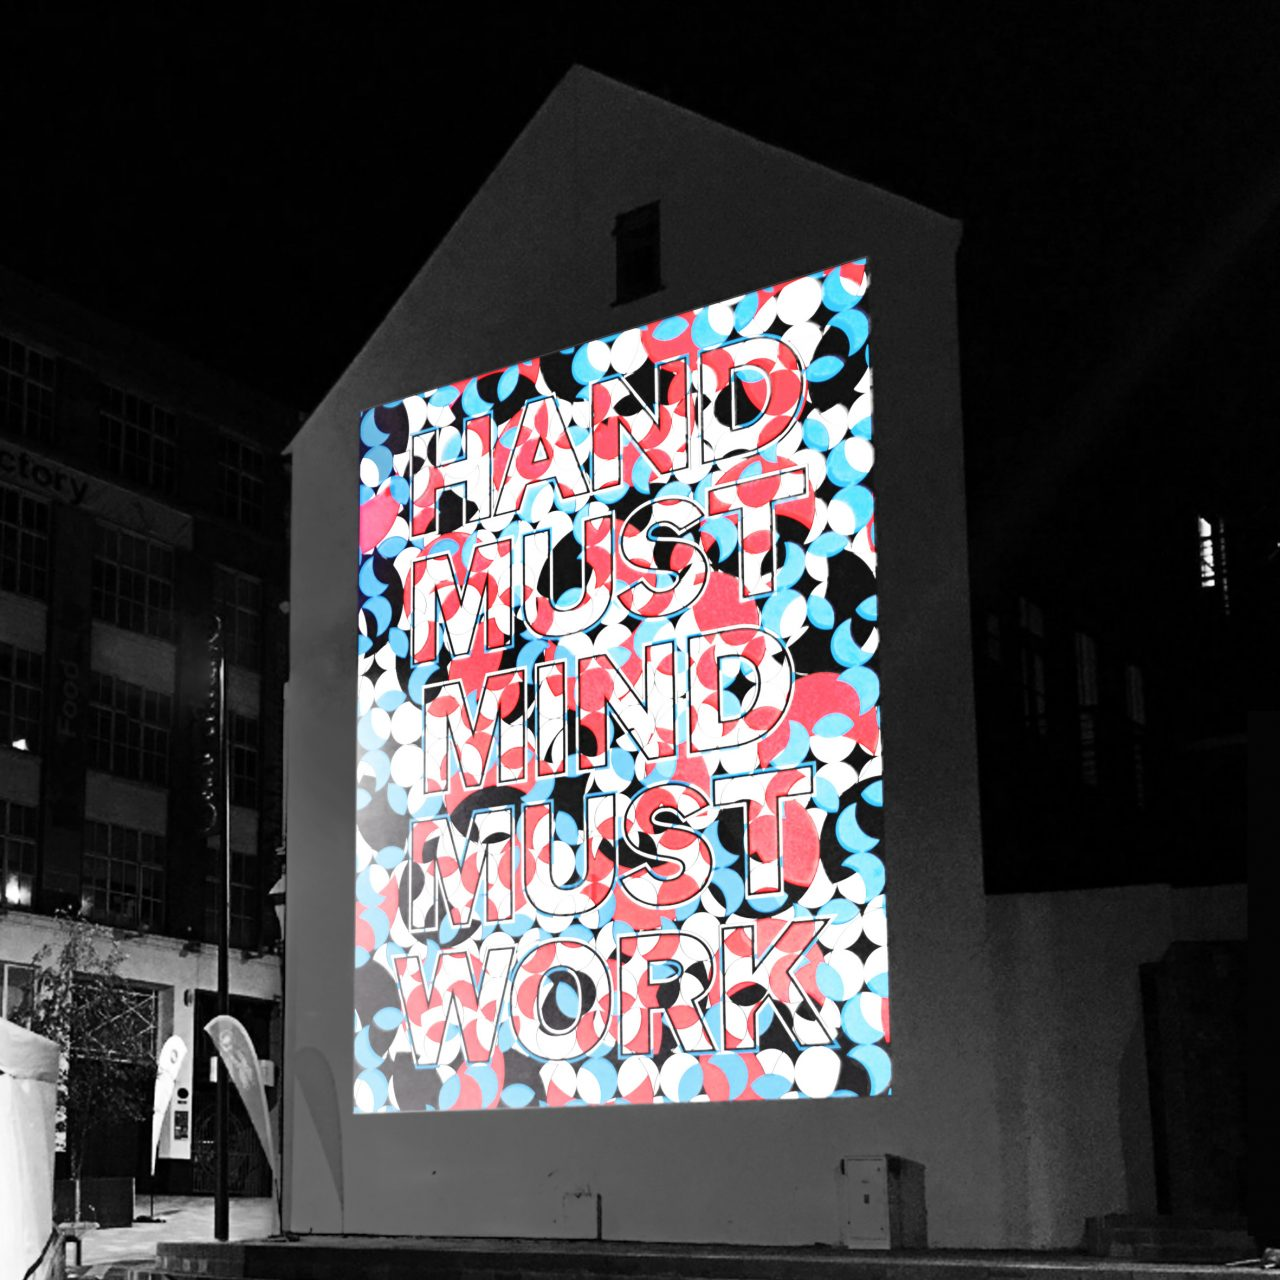 A brightly coloured projection of geometric shapes onto the Culture Wall at the launch of the public realm arts project with guests enjoying a feast next to it.